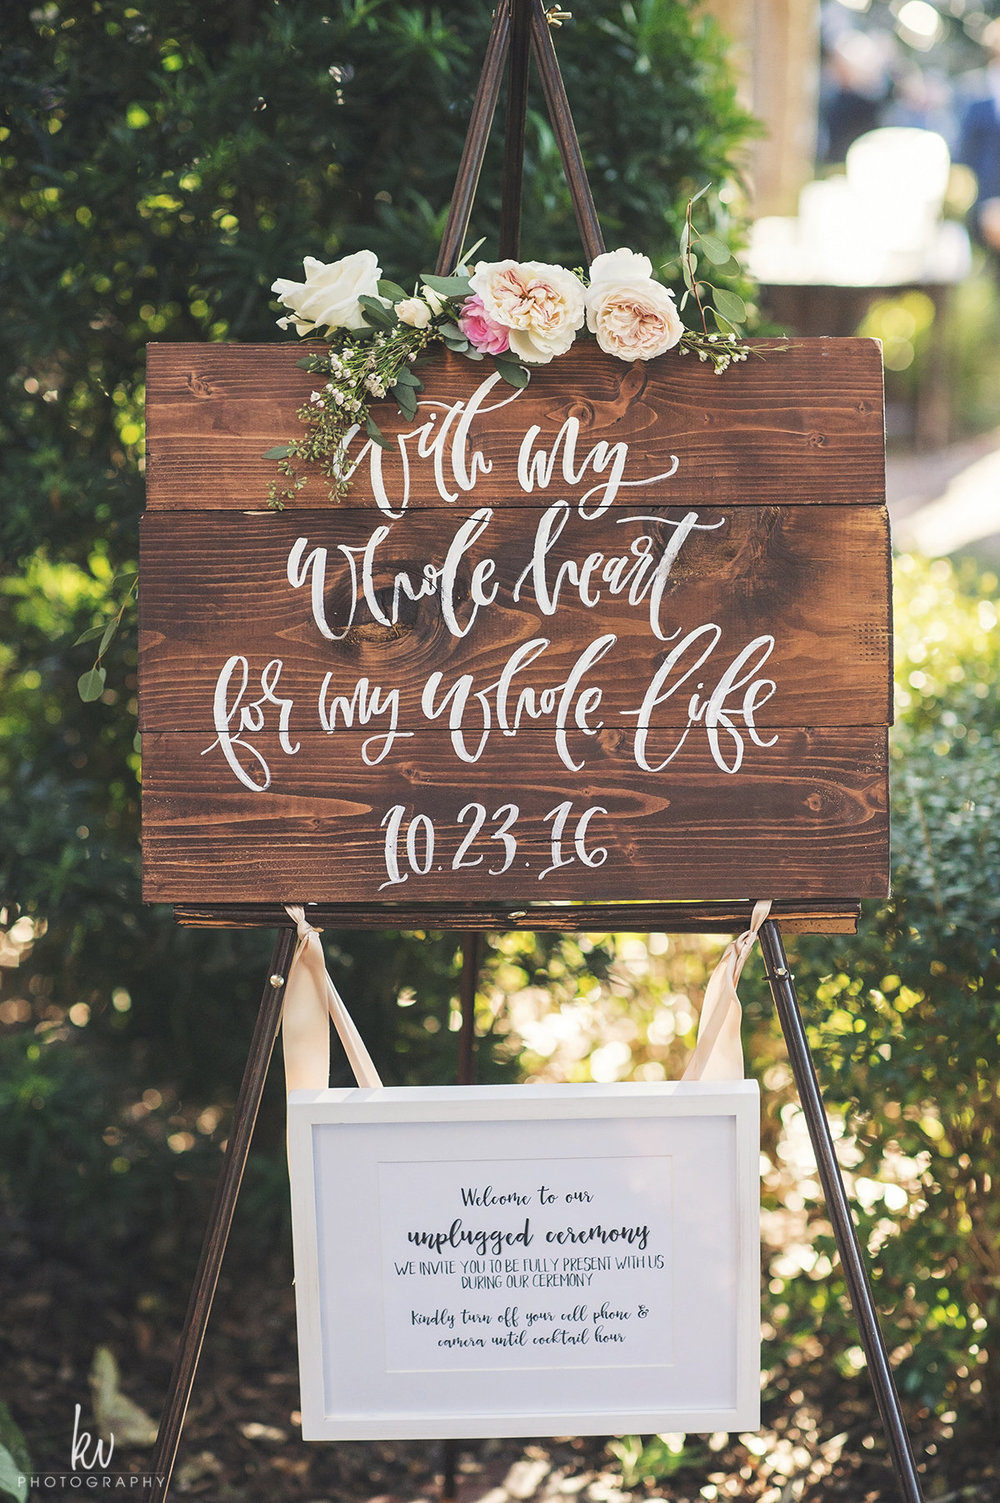 With my whole heart for my whole life 10.23.16, calligraphy wedding signage